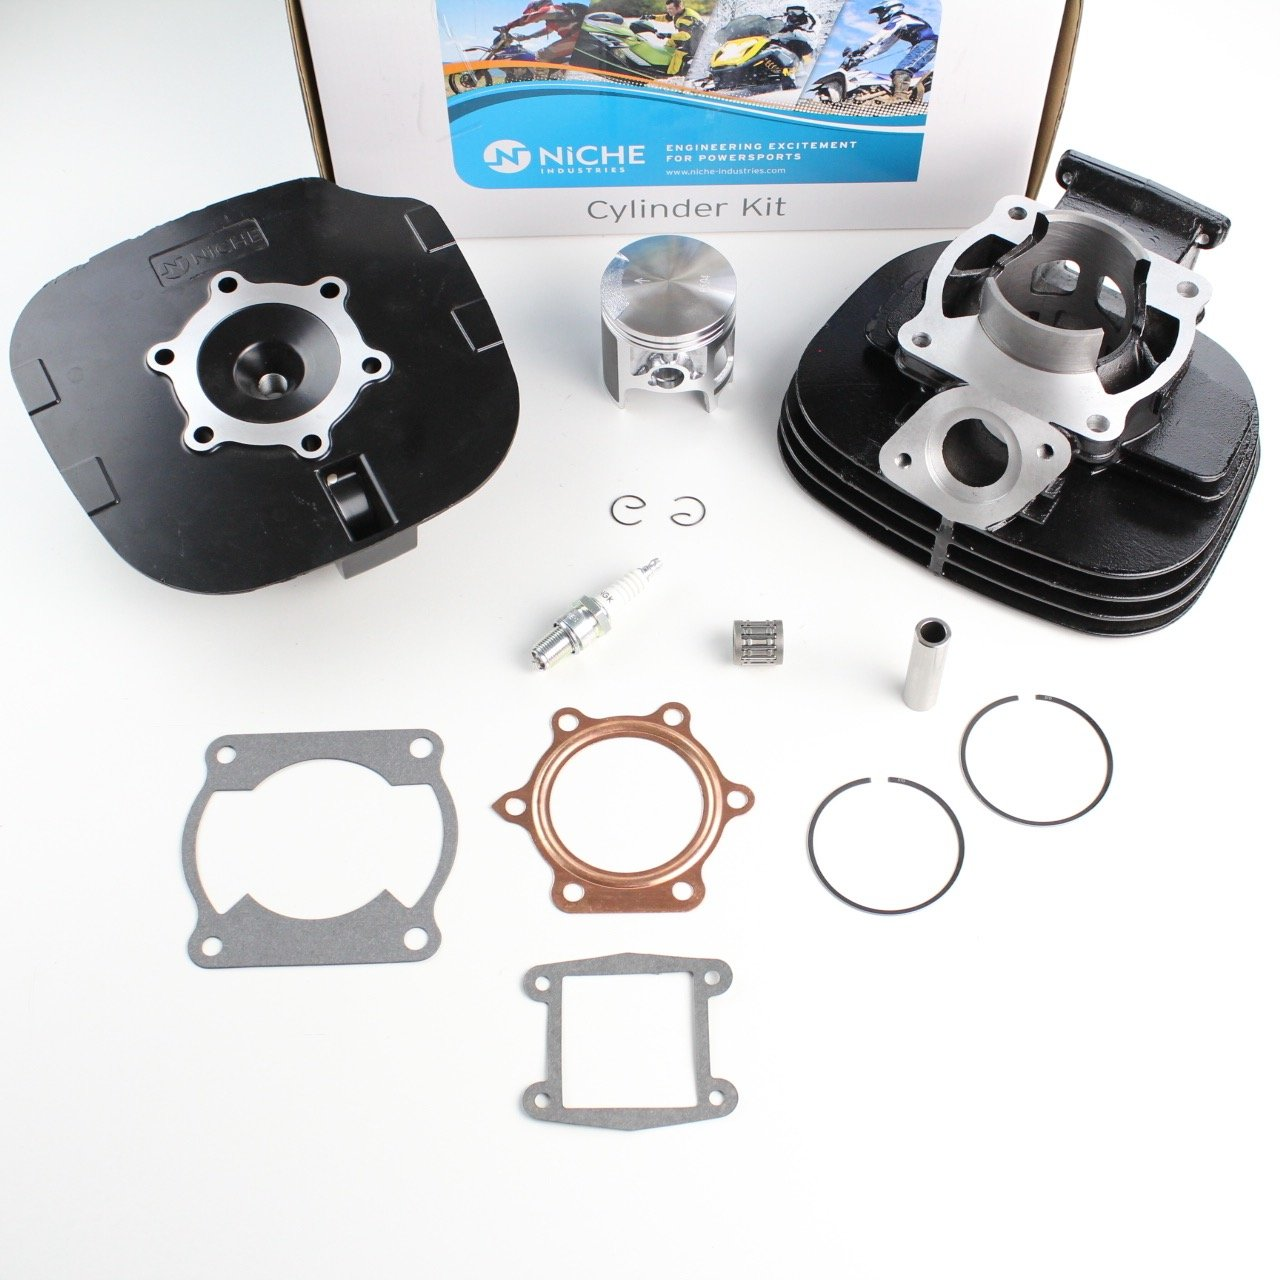 NICHE Cylinder Piston Gasket Cylinder Head Kit for Yamaha Blaster 200 YFS200 1988-2006